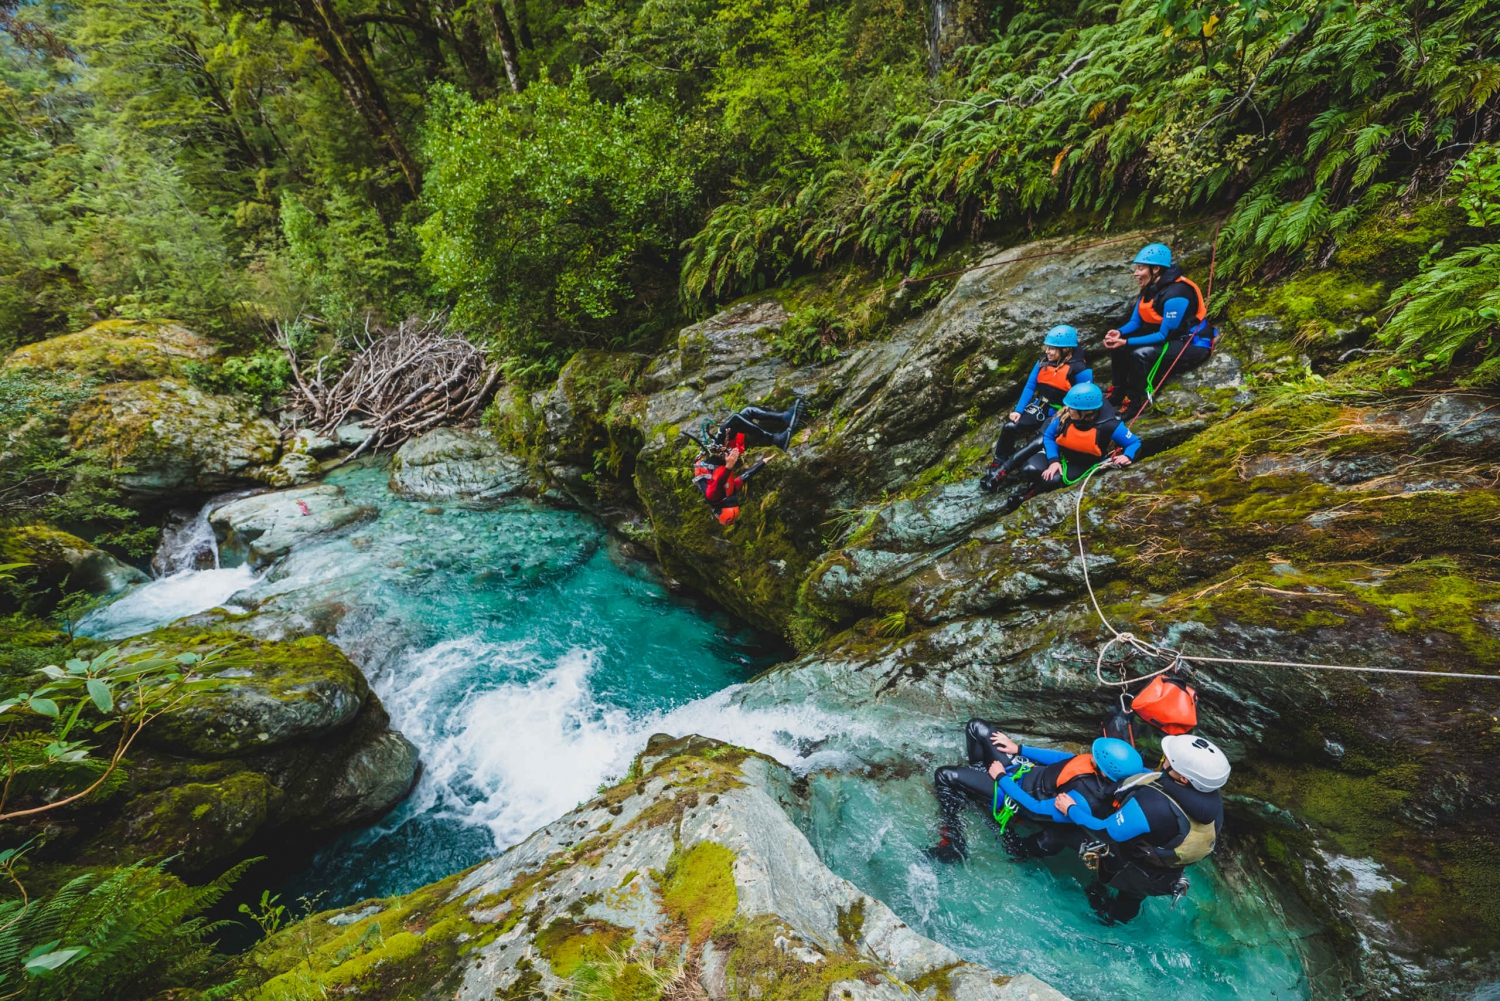 Full Day Canyoning Tour in The Routeburn Valley